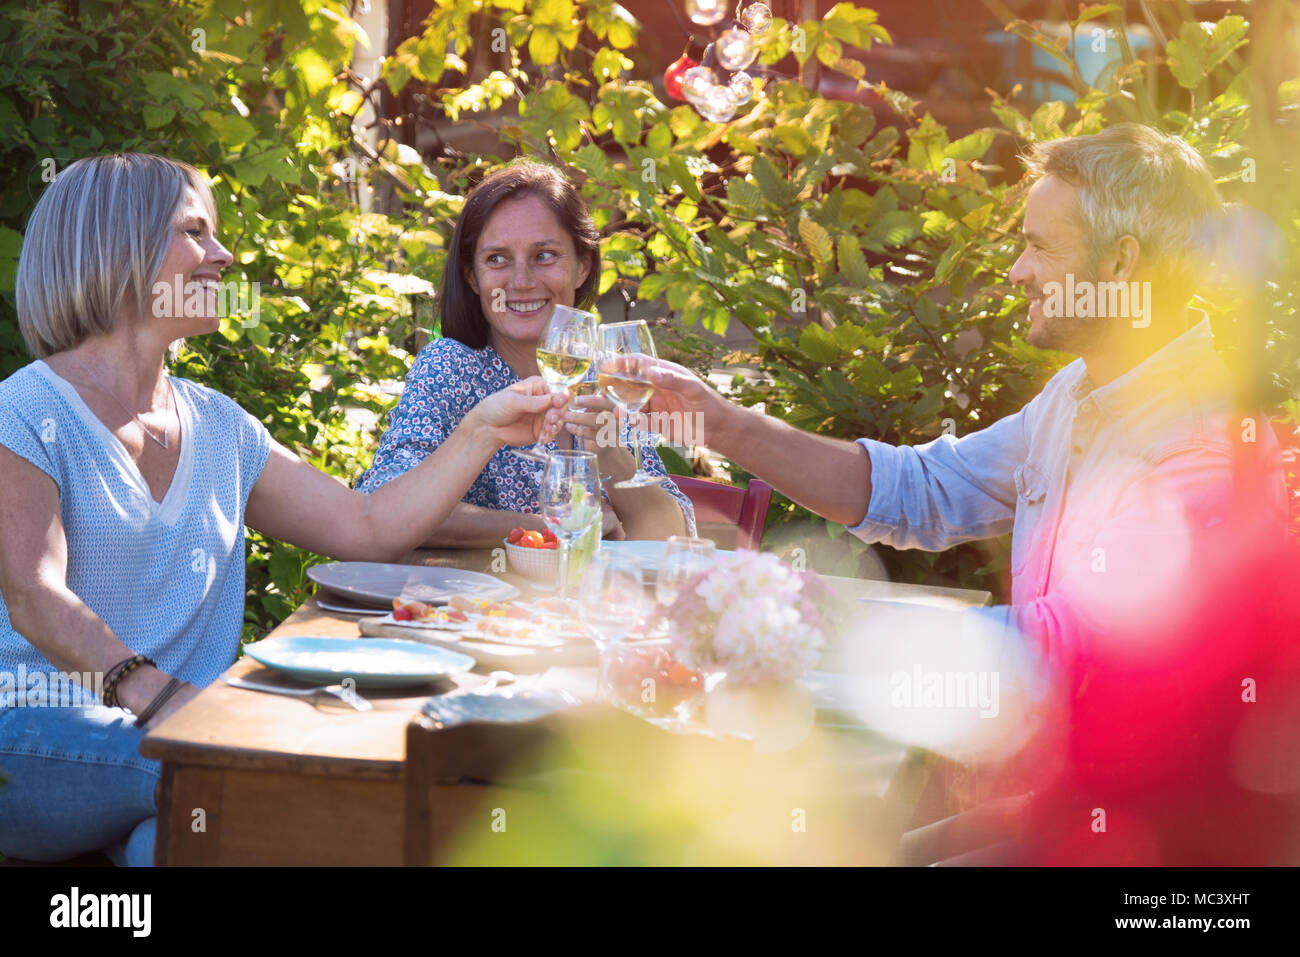 In summer, a group of friends in their forties gather around a table in the garden to share a good time around a meal. - Stock Image